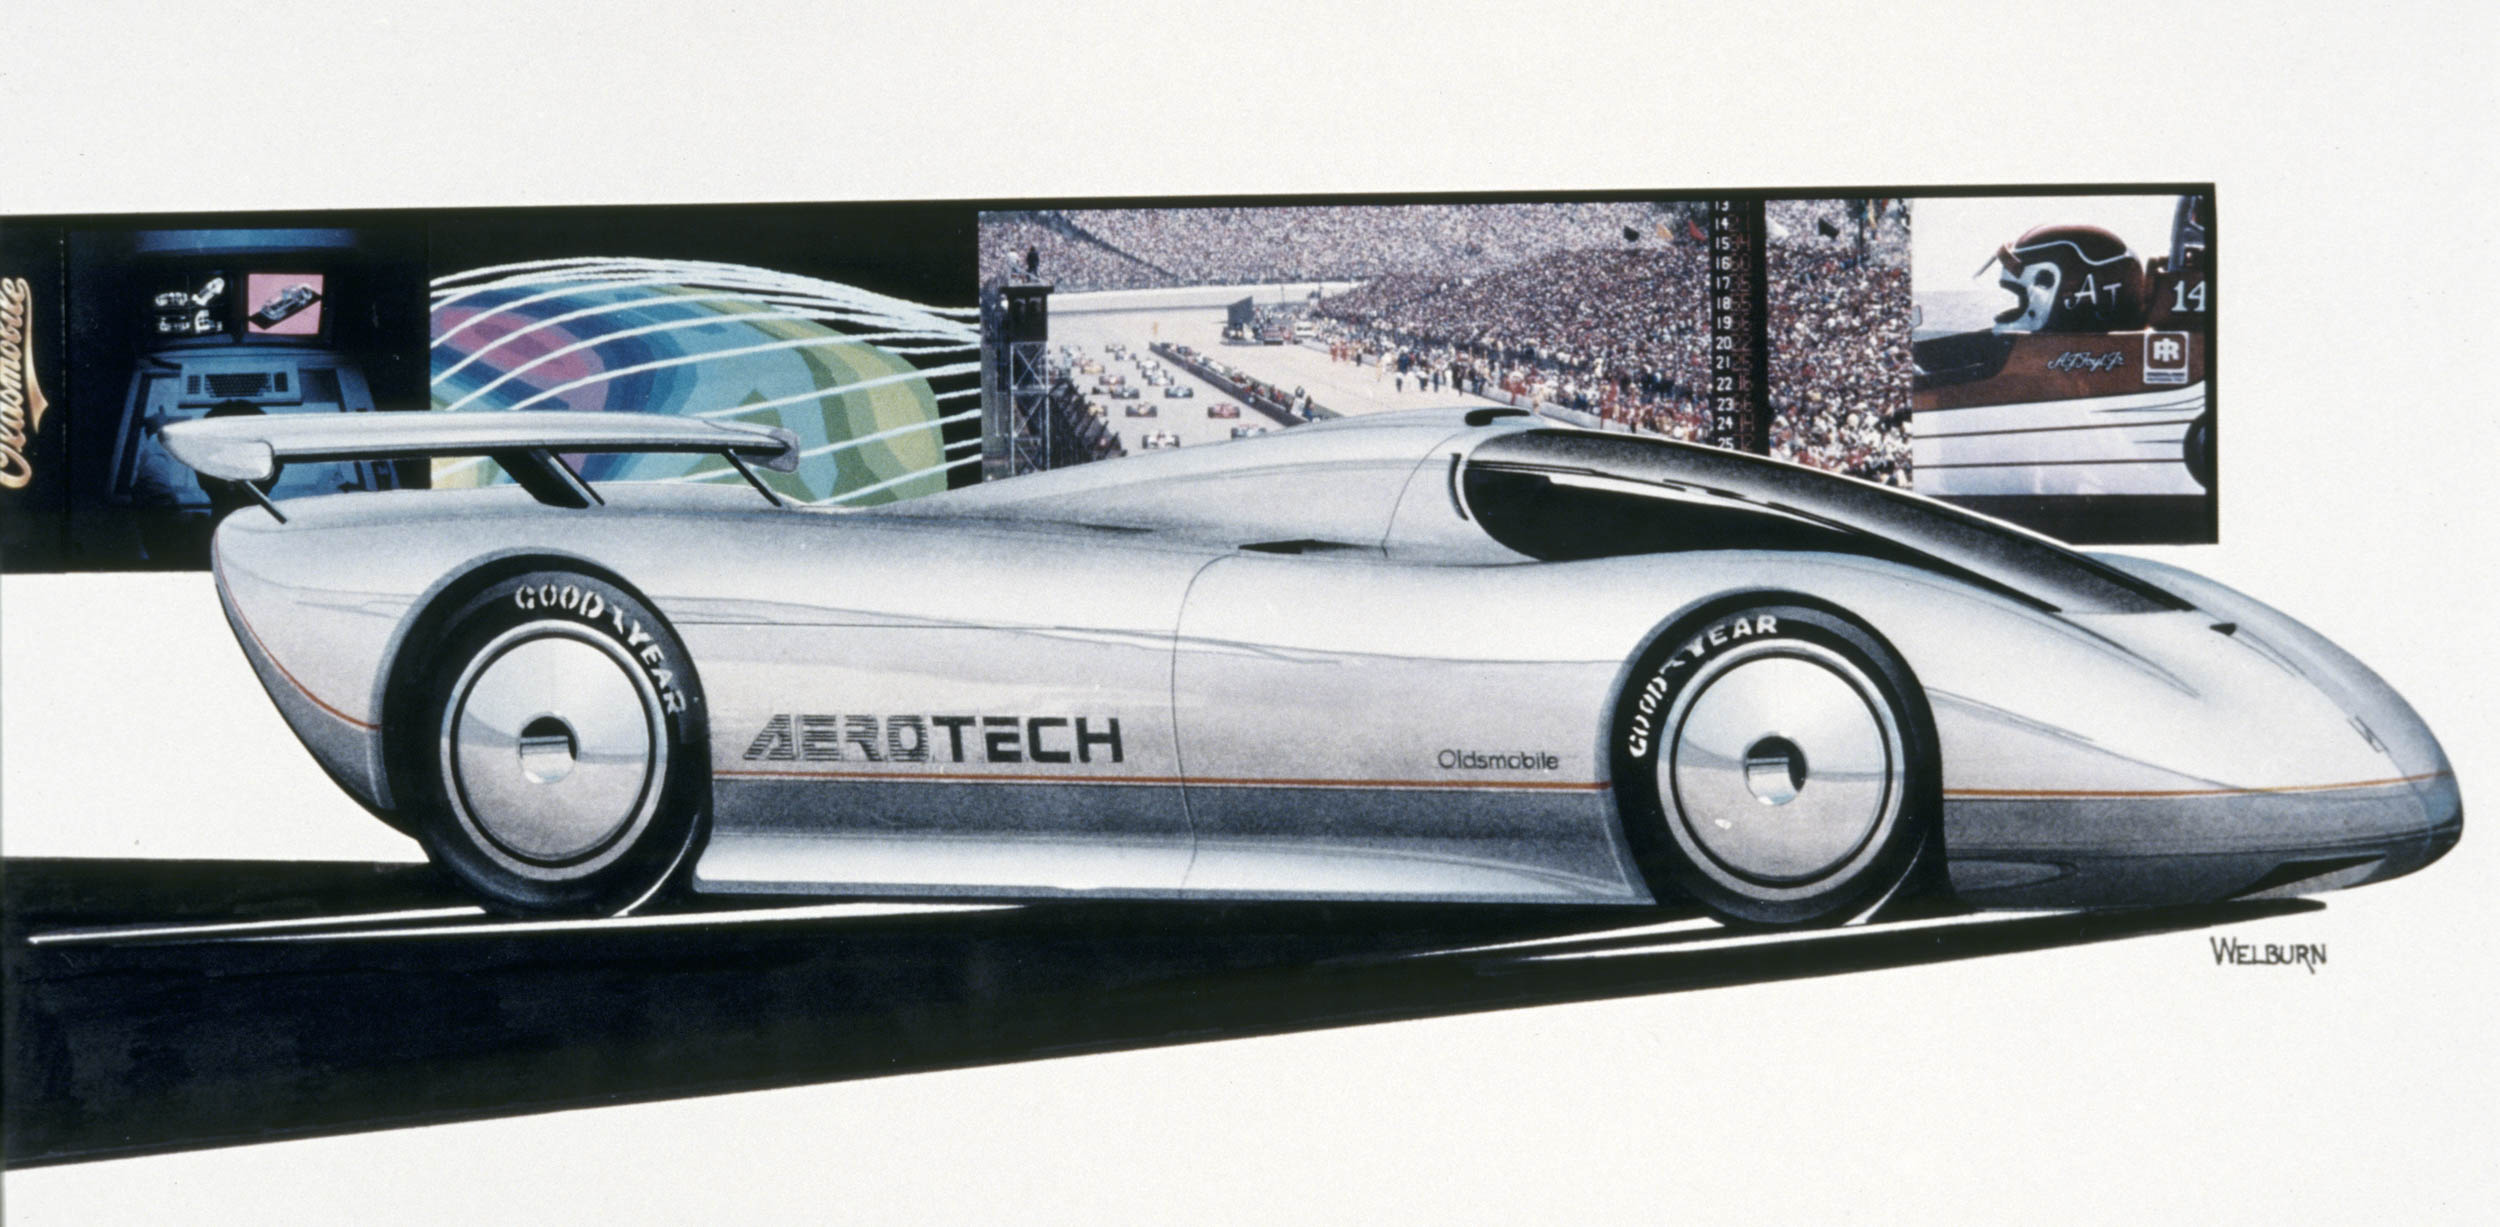 1987 Oldsmobile Aerotech concept art by Ed Welburn